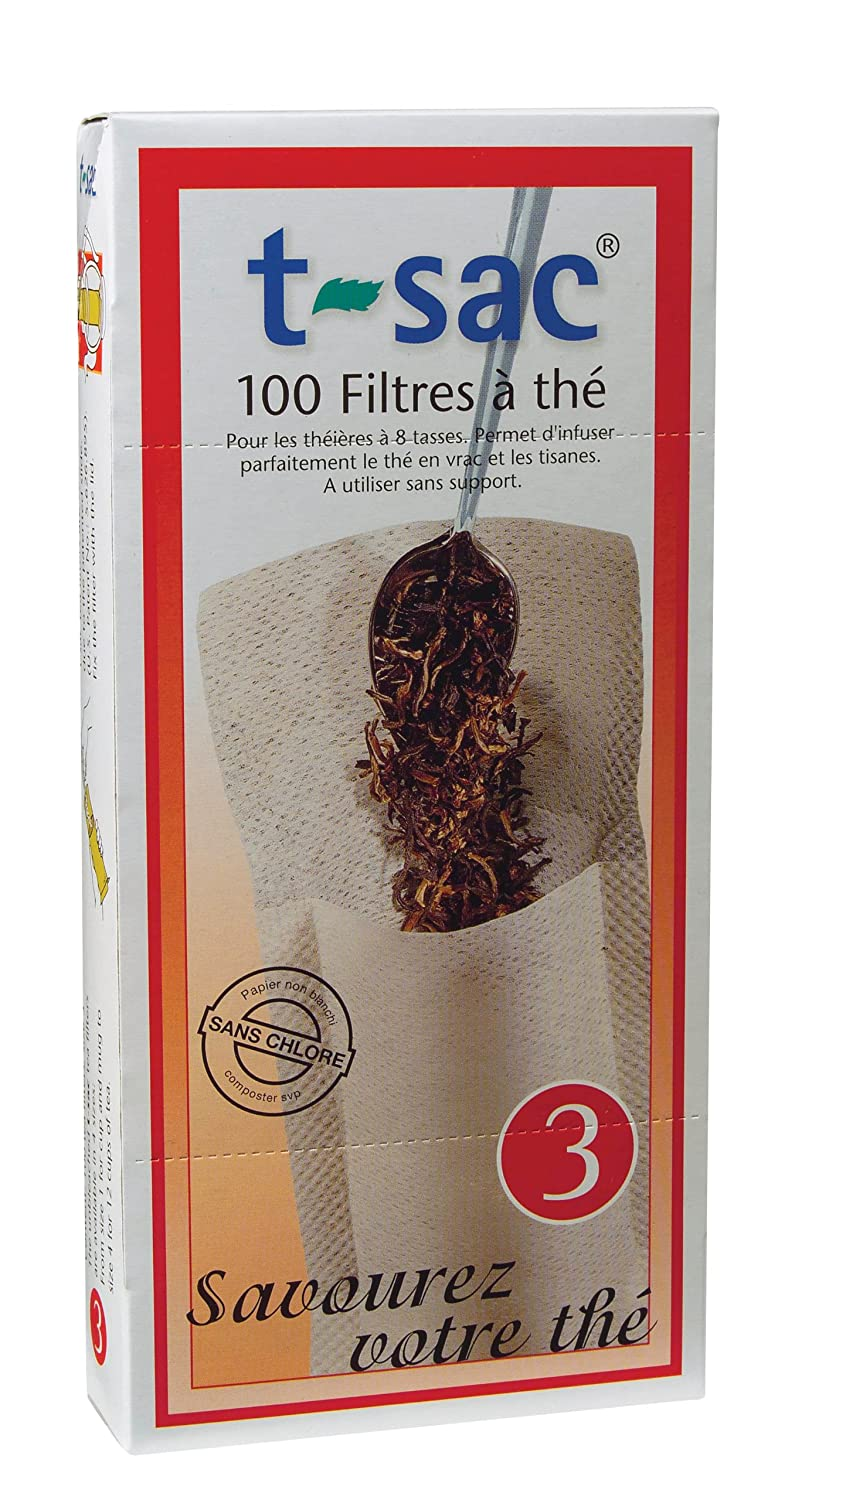 T-Sac Tea Filter Bags, Disposable Tea Infuser, Number 3-Size, 3 to 8-Cup Capacity, 100 Count